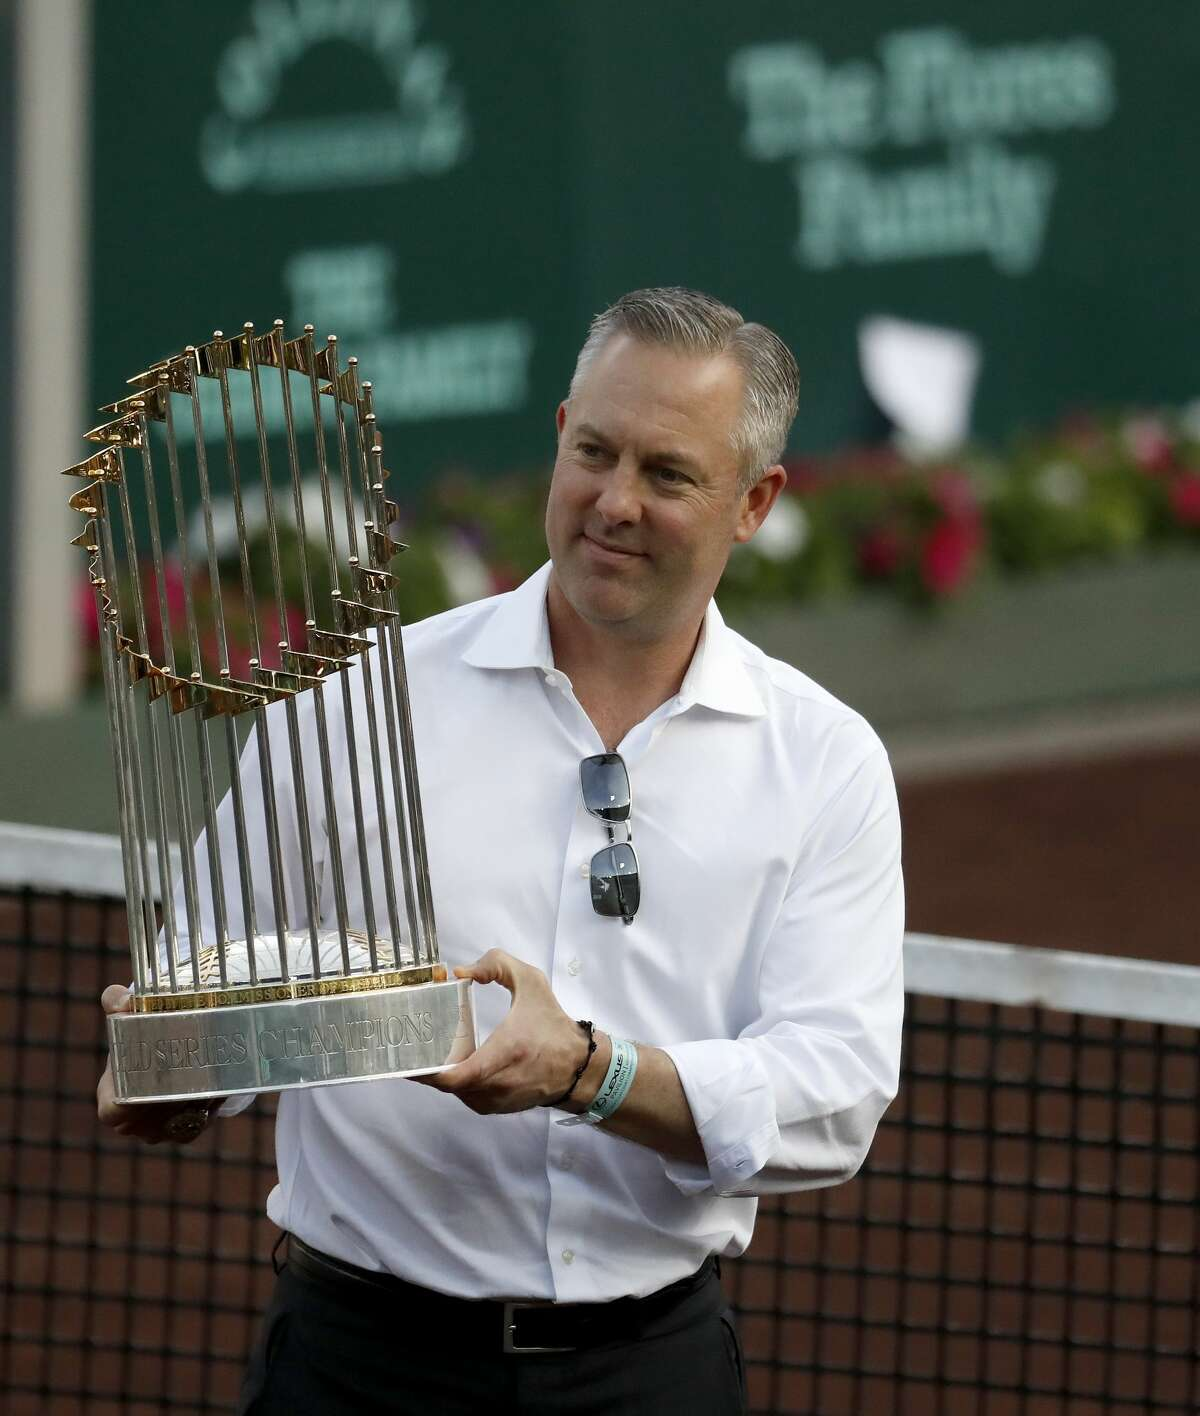 President of the Houston Astros Reid Ryan shows off the Commisoner's Trophy between matches during the U.S. Men's Clay Court Championship at River Oaks Country Club, Wednesday, April 11, 2018, in Houston. ( Karen Warren / Houston Chronicle )